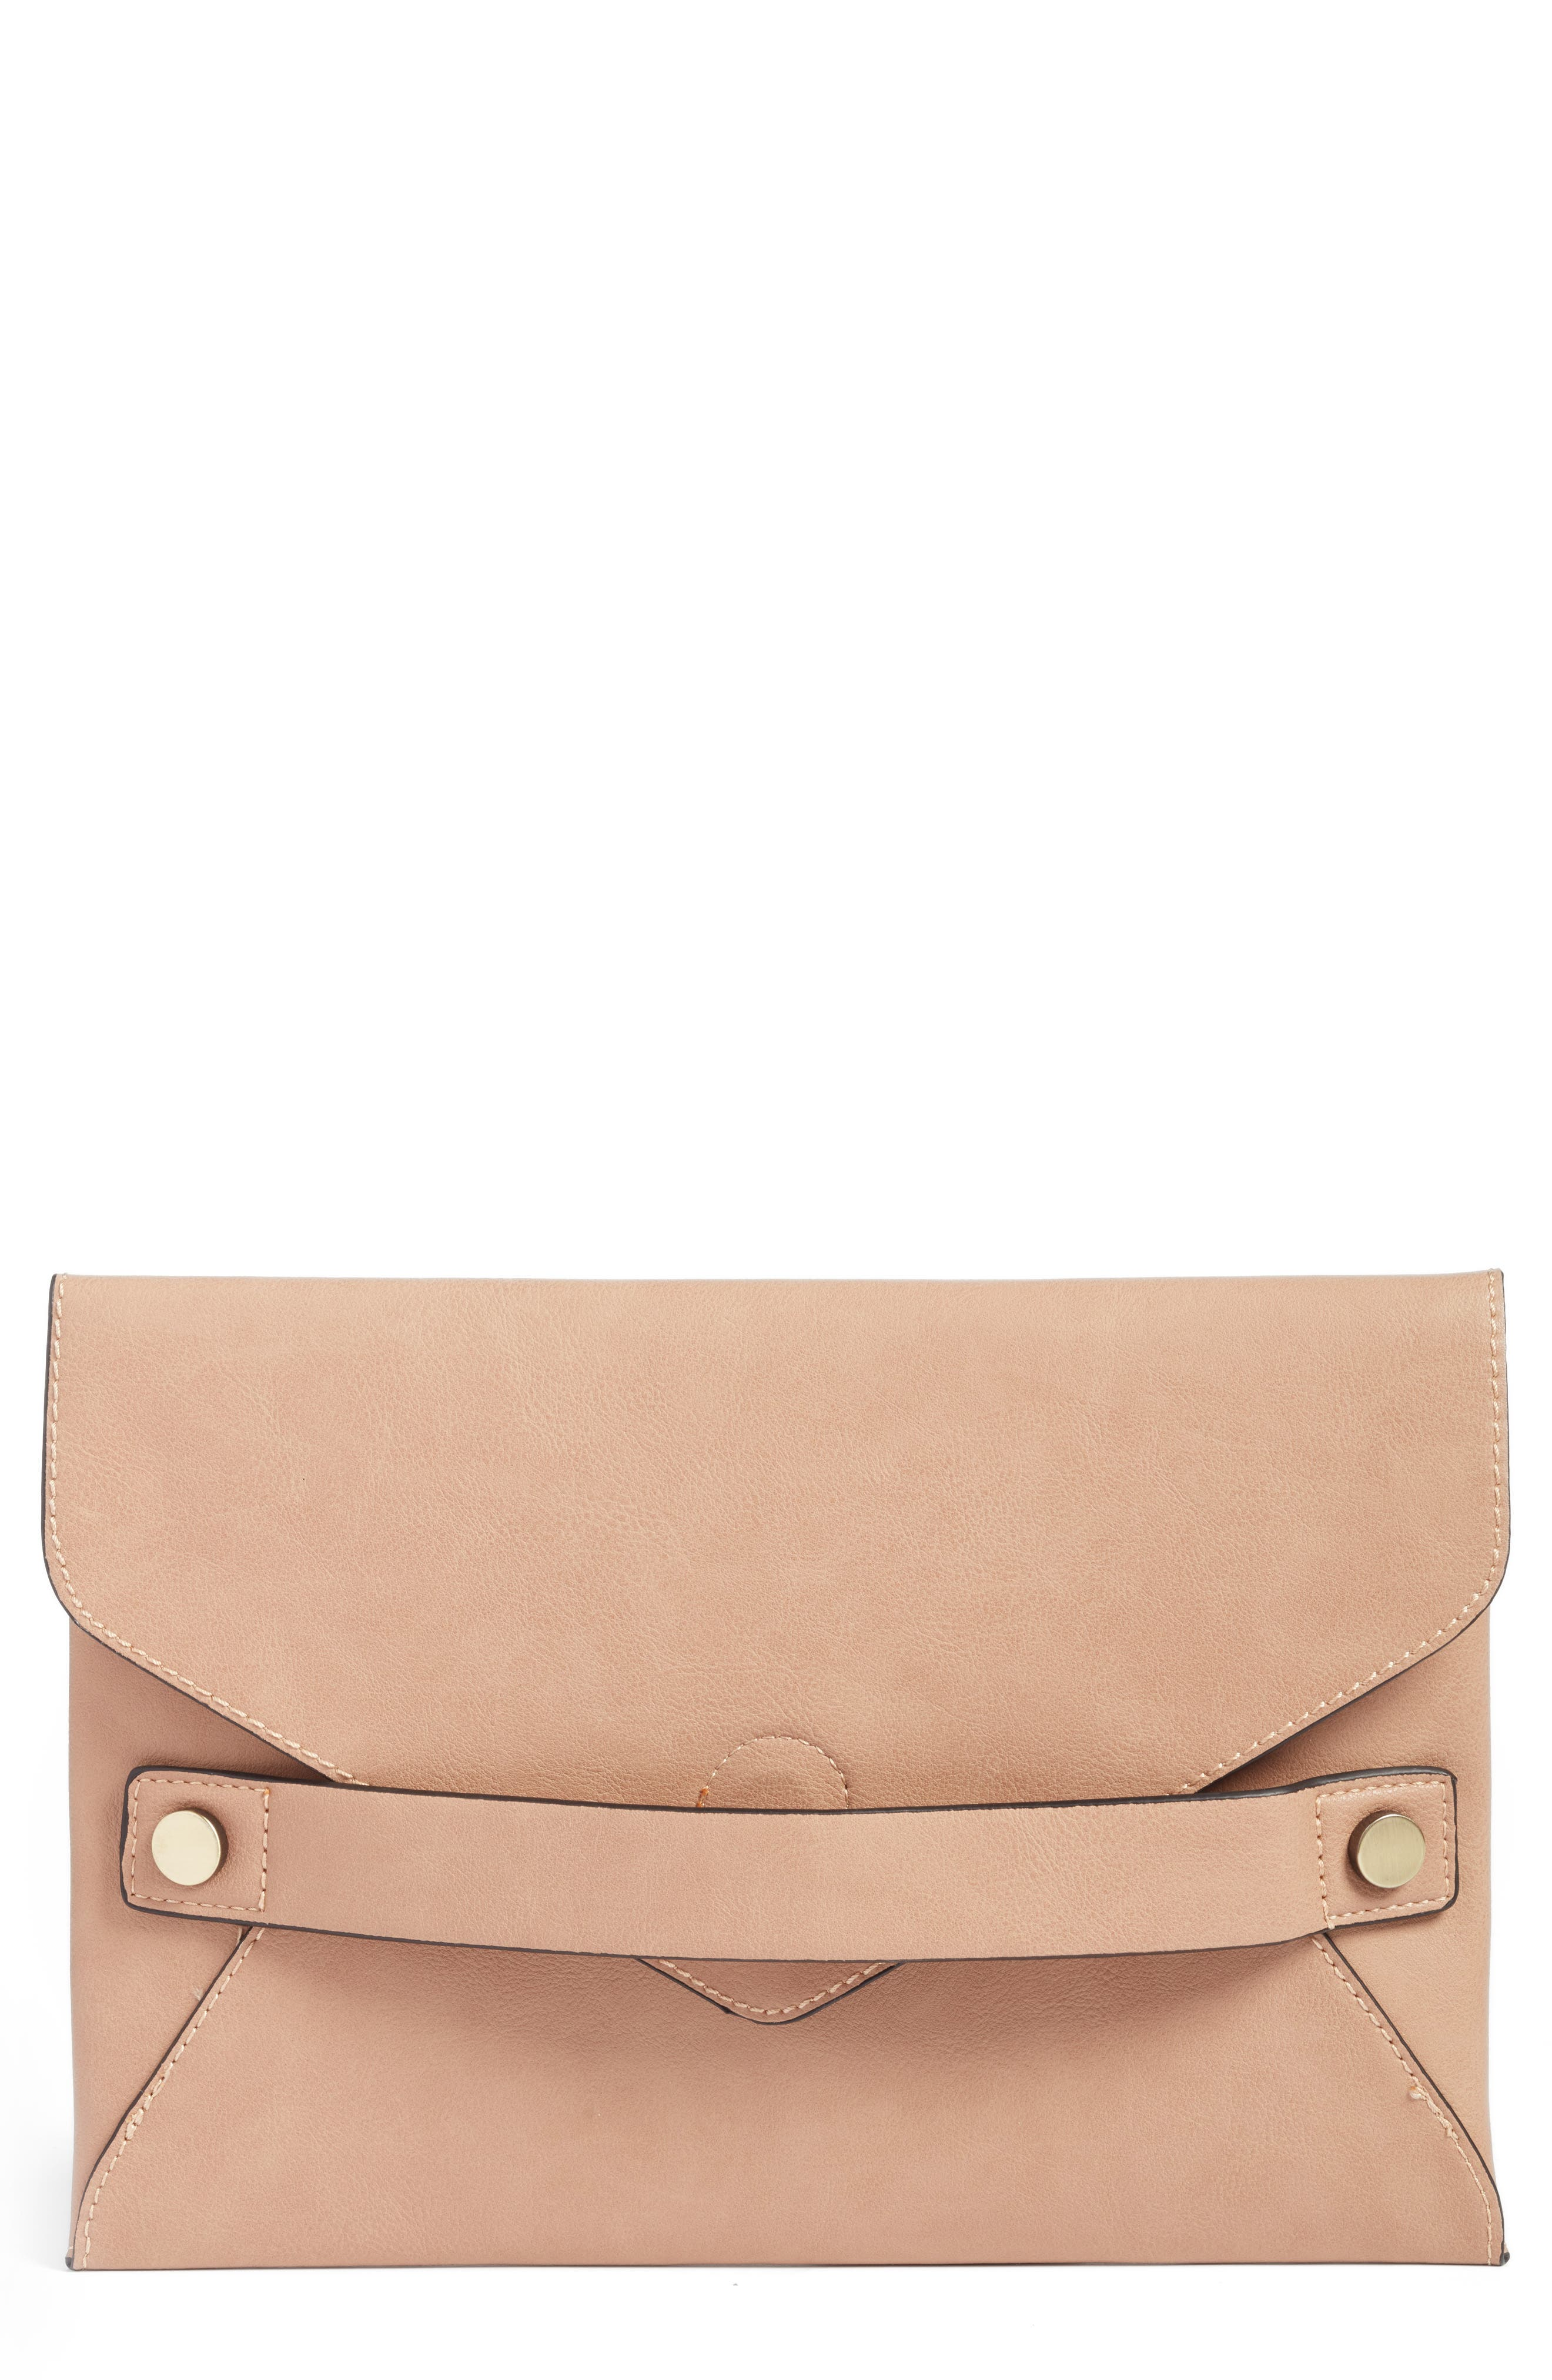 Main Image - Sole Society Karen Faux Leather Envelope Clutch